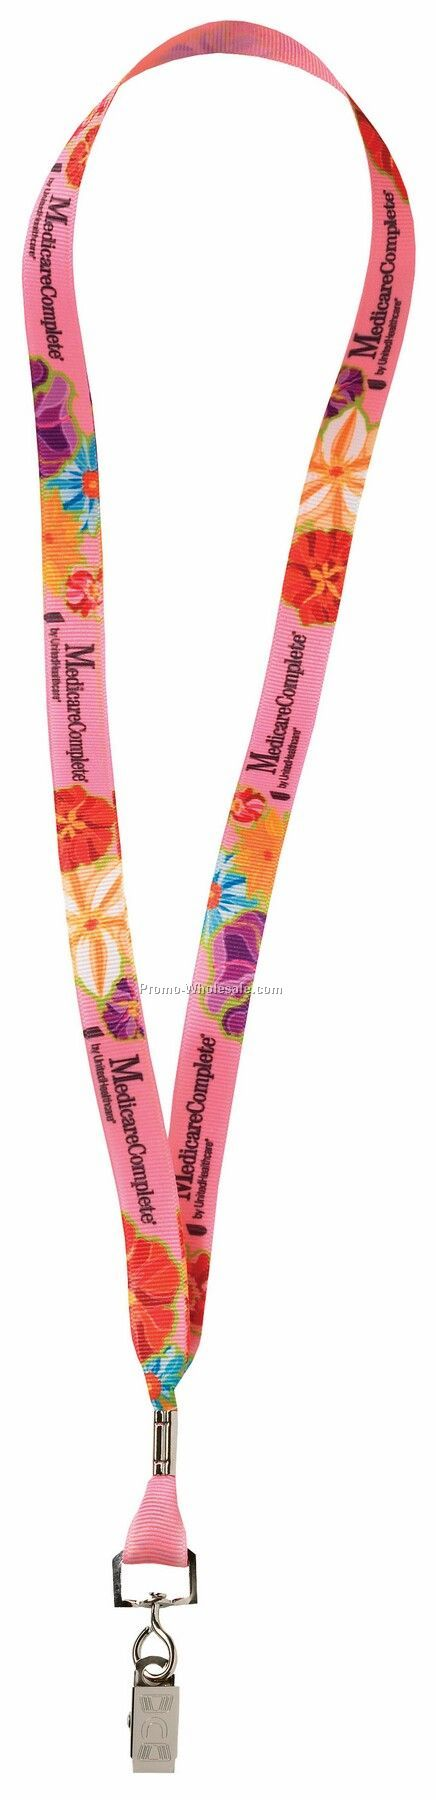 "5/8"" Full Color Poly Ribbon Lanyards With O-ring Attachment"